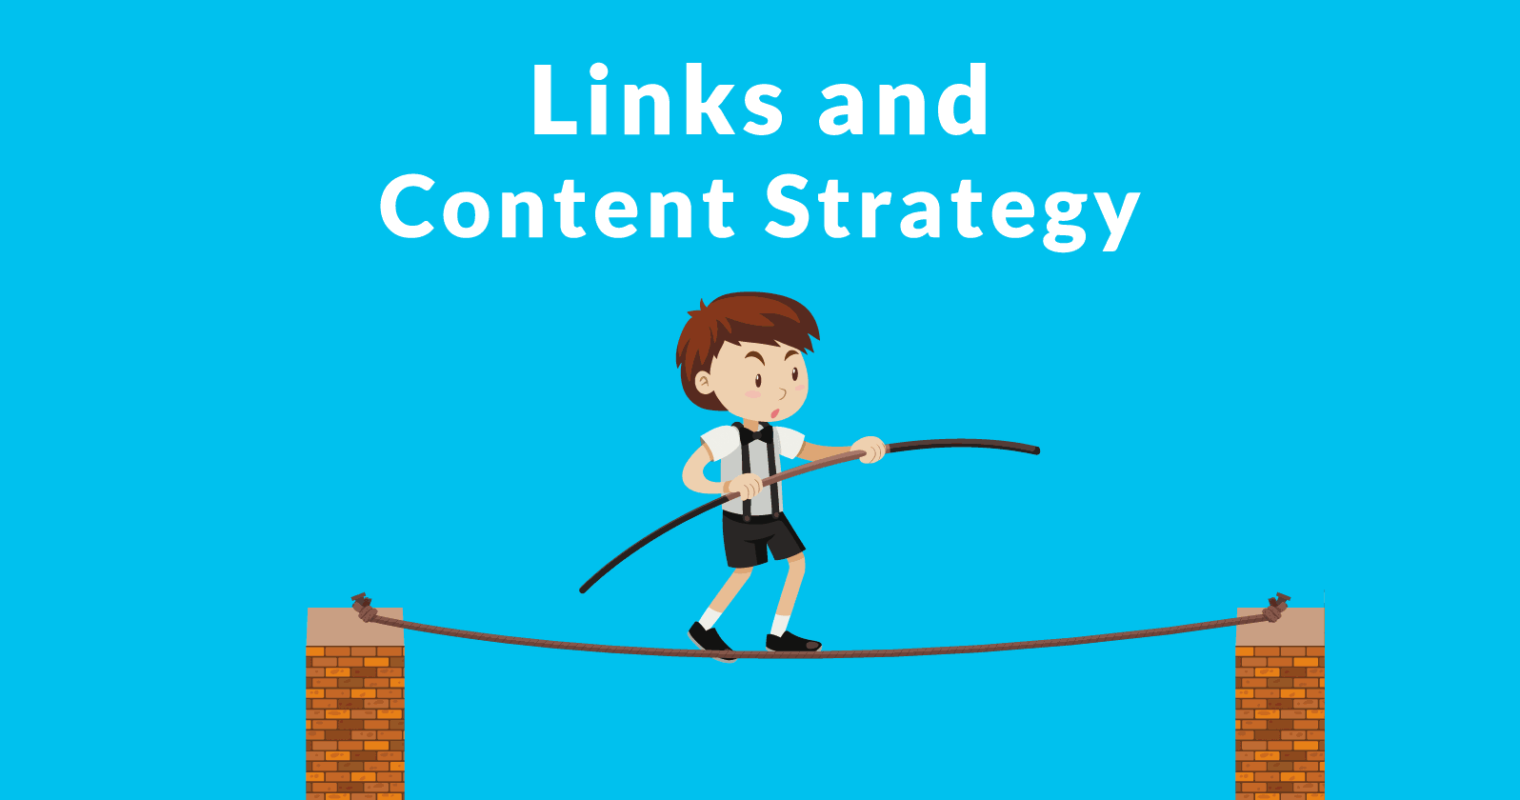 Outbound Links Content Strategy